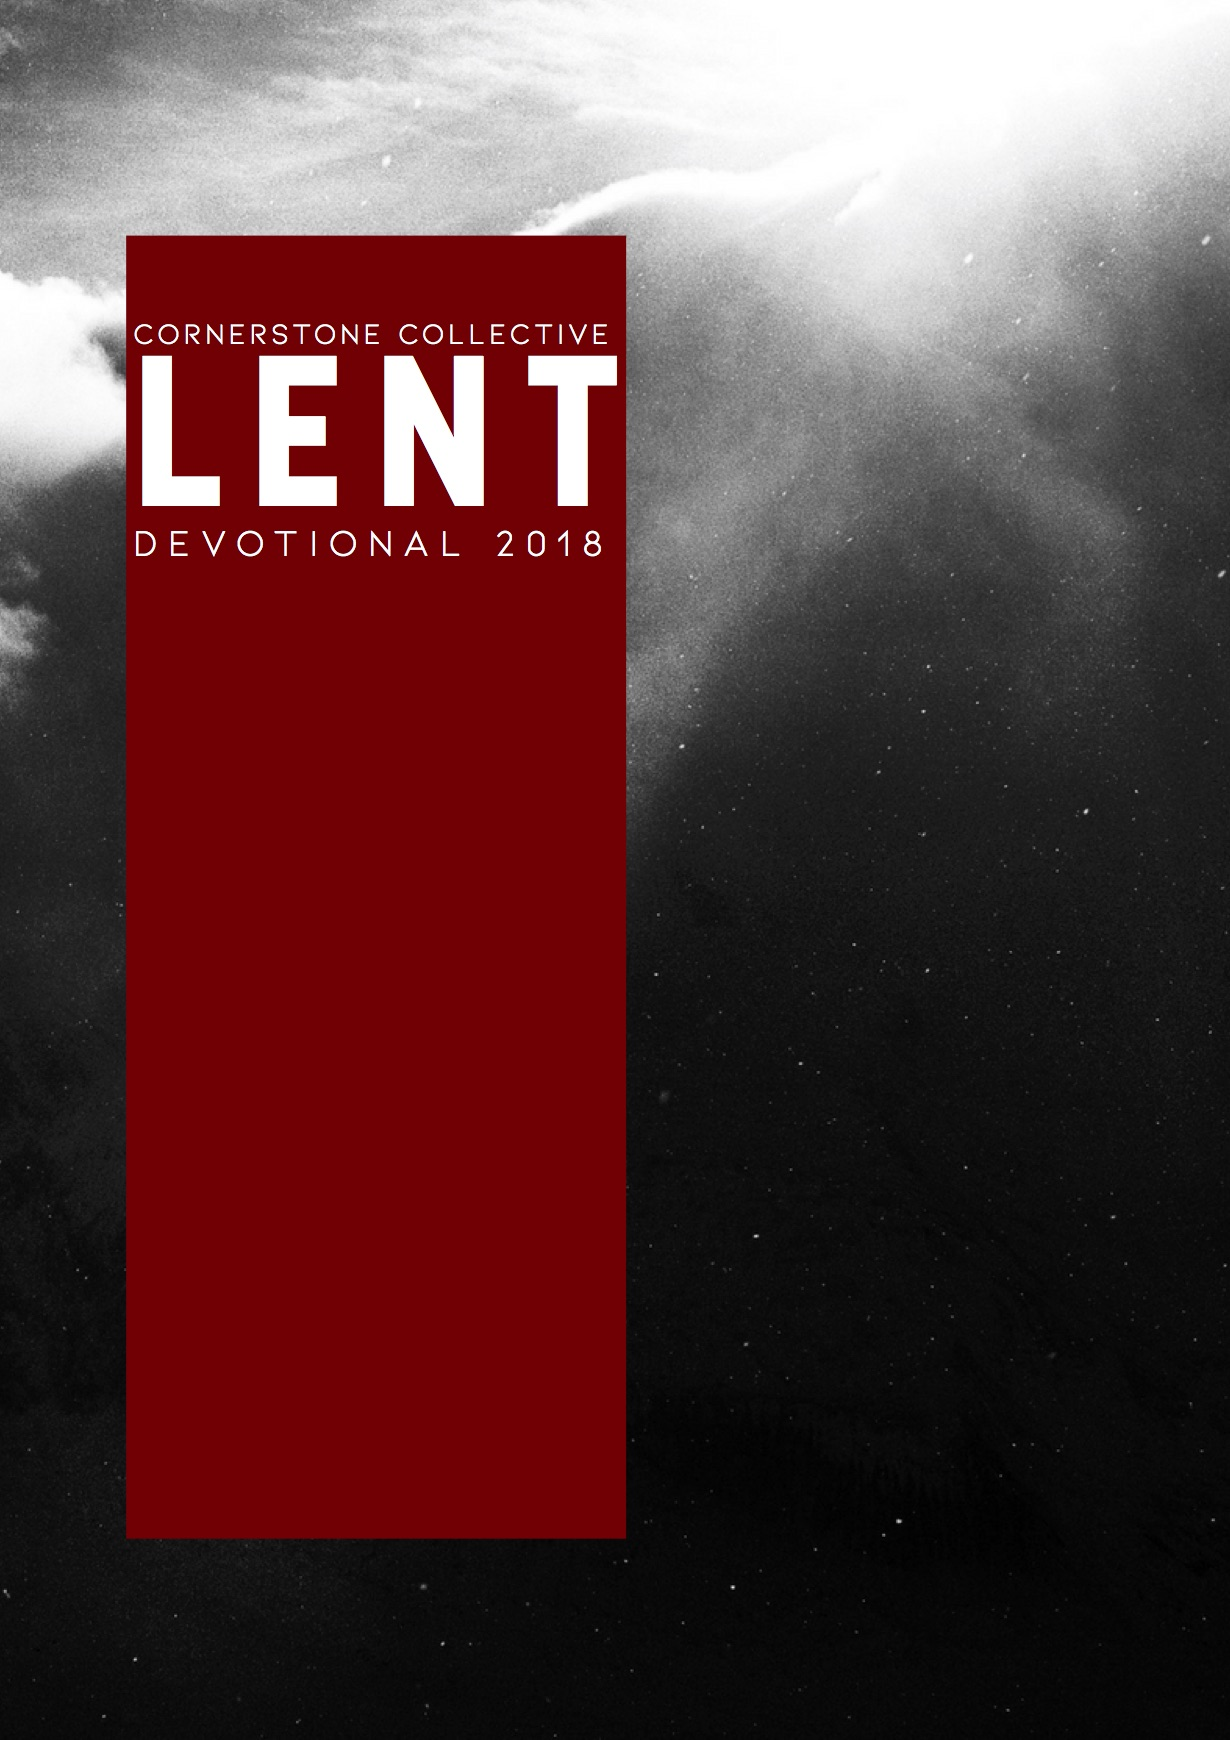 2018 LENT Devotional